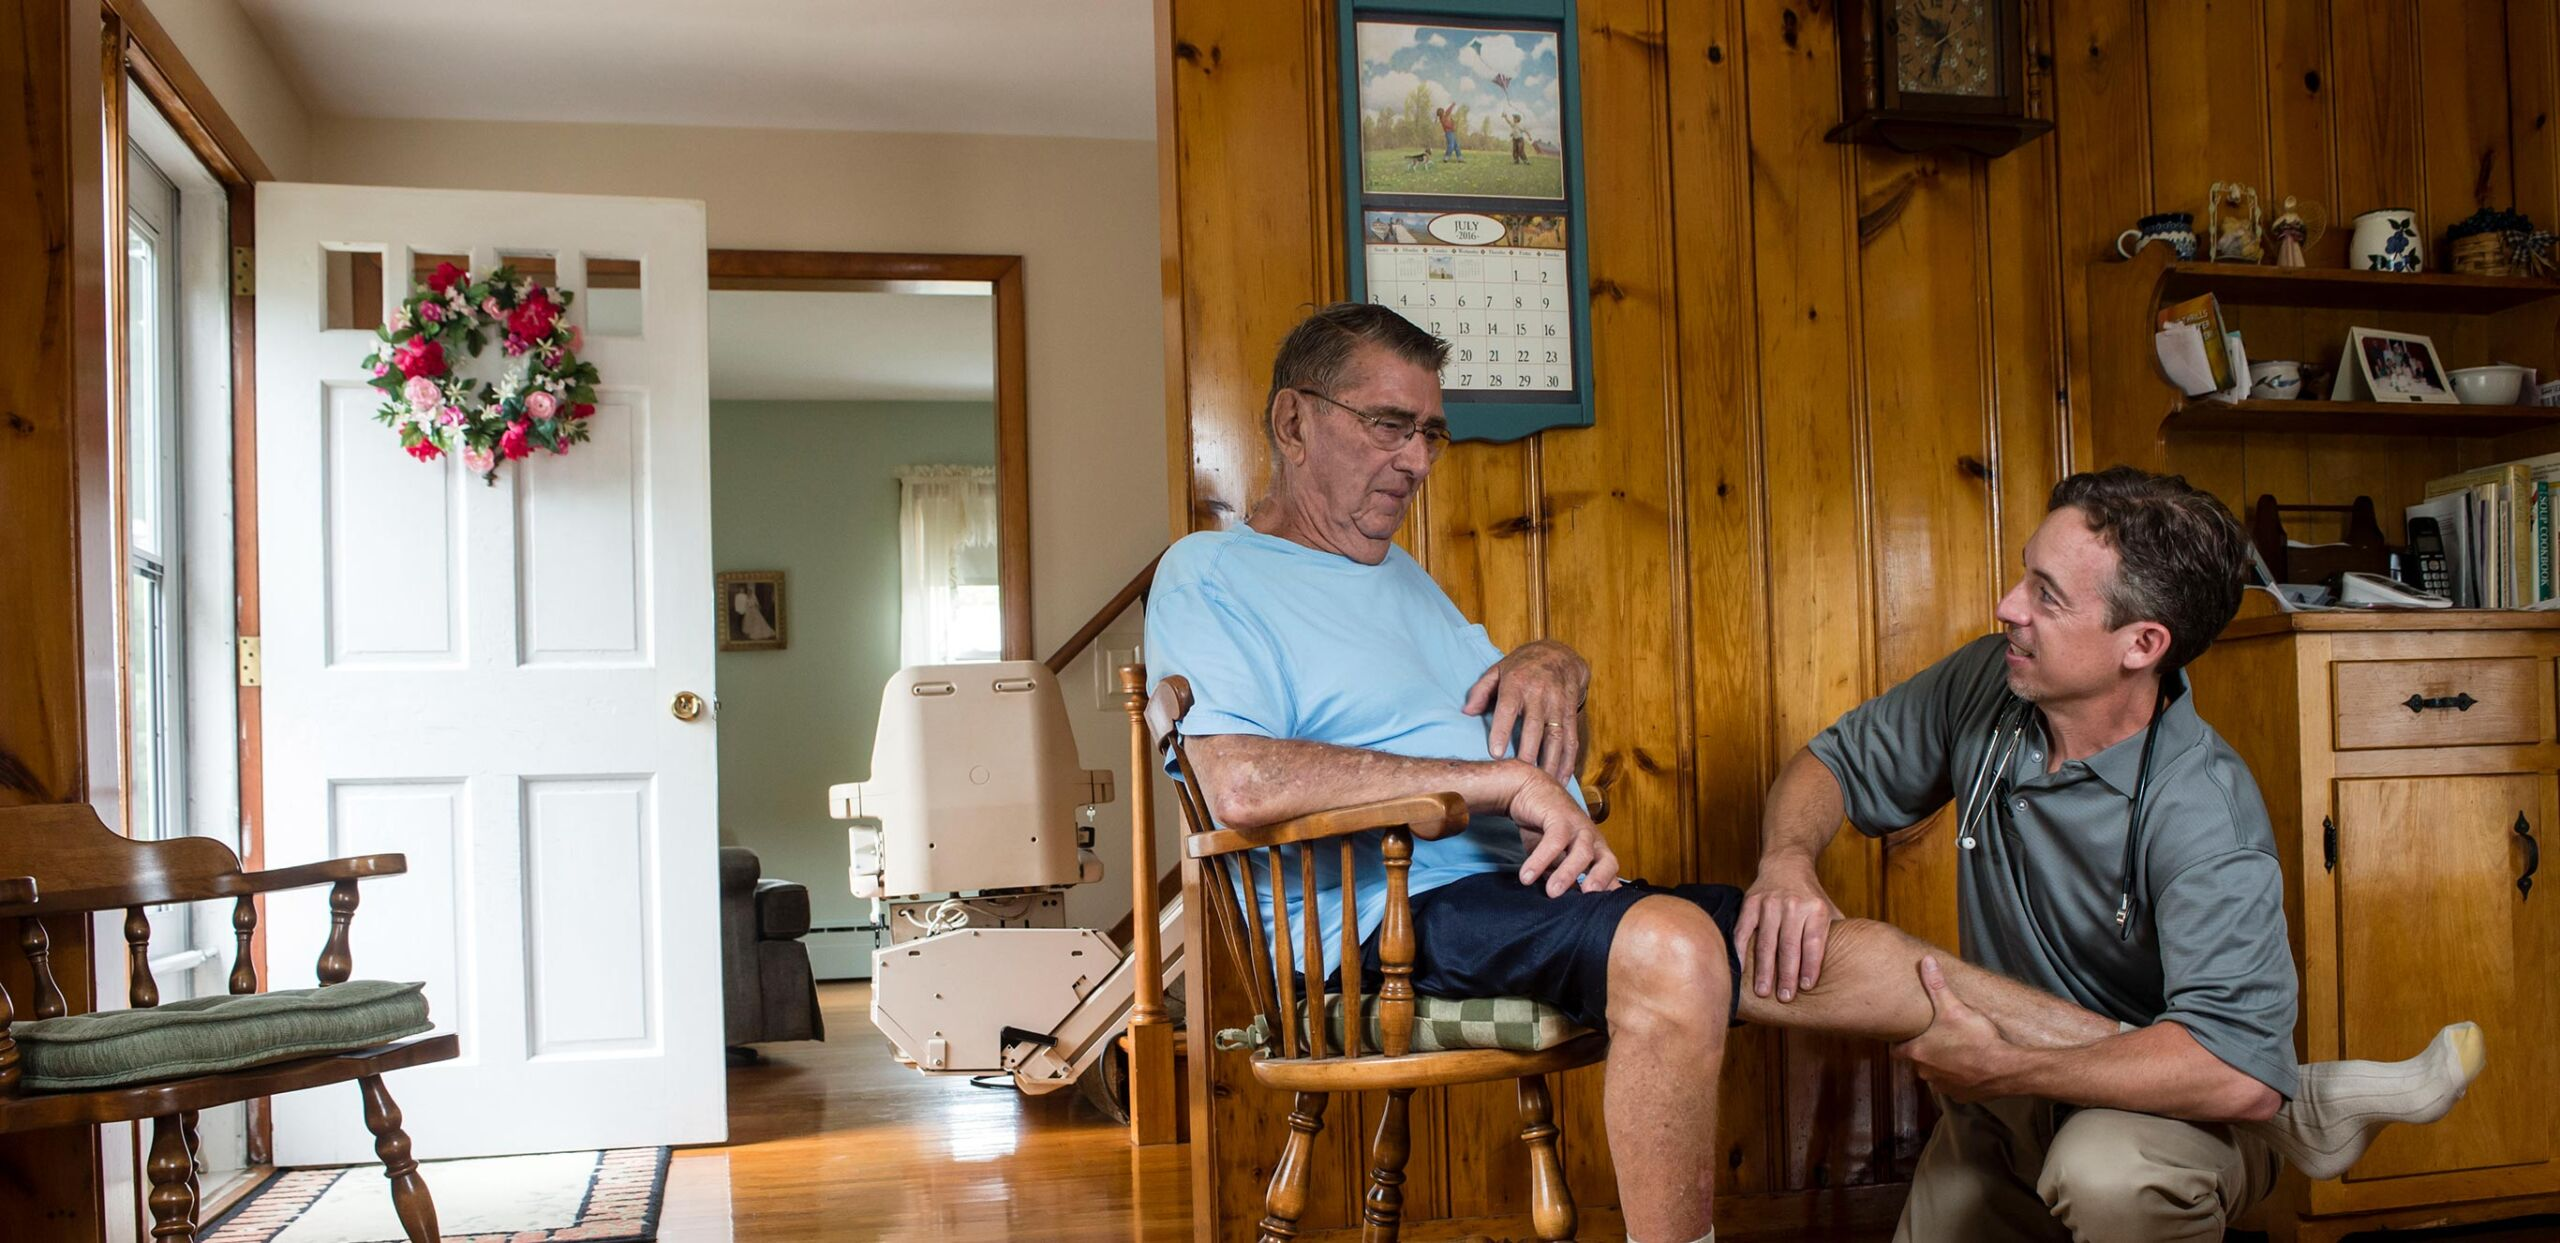 Physical therapist works with patient in his home, Cooley Dickinson Medical Group VNA and Hospice, Northampton, MA 01060.